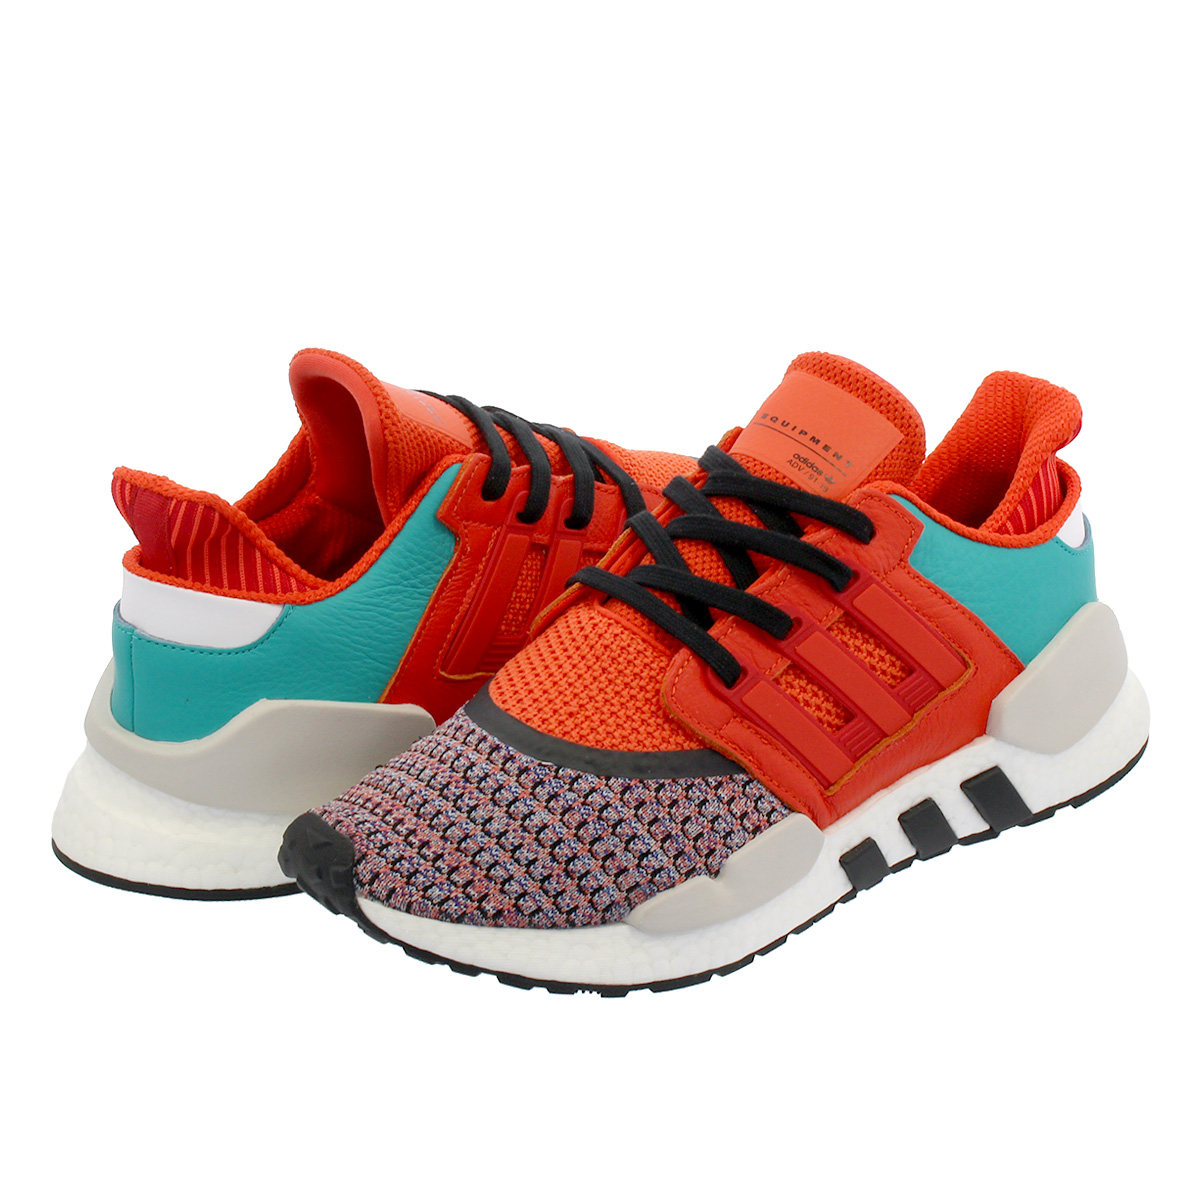 the latest 30355 1c9d3 adidas EQT SUPPORT 91/18 Adidas EQT support 91/18 BOLD ORANGE/RUNNING  WHITE/CORE BLACK d97049